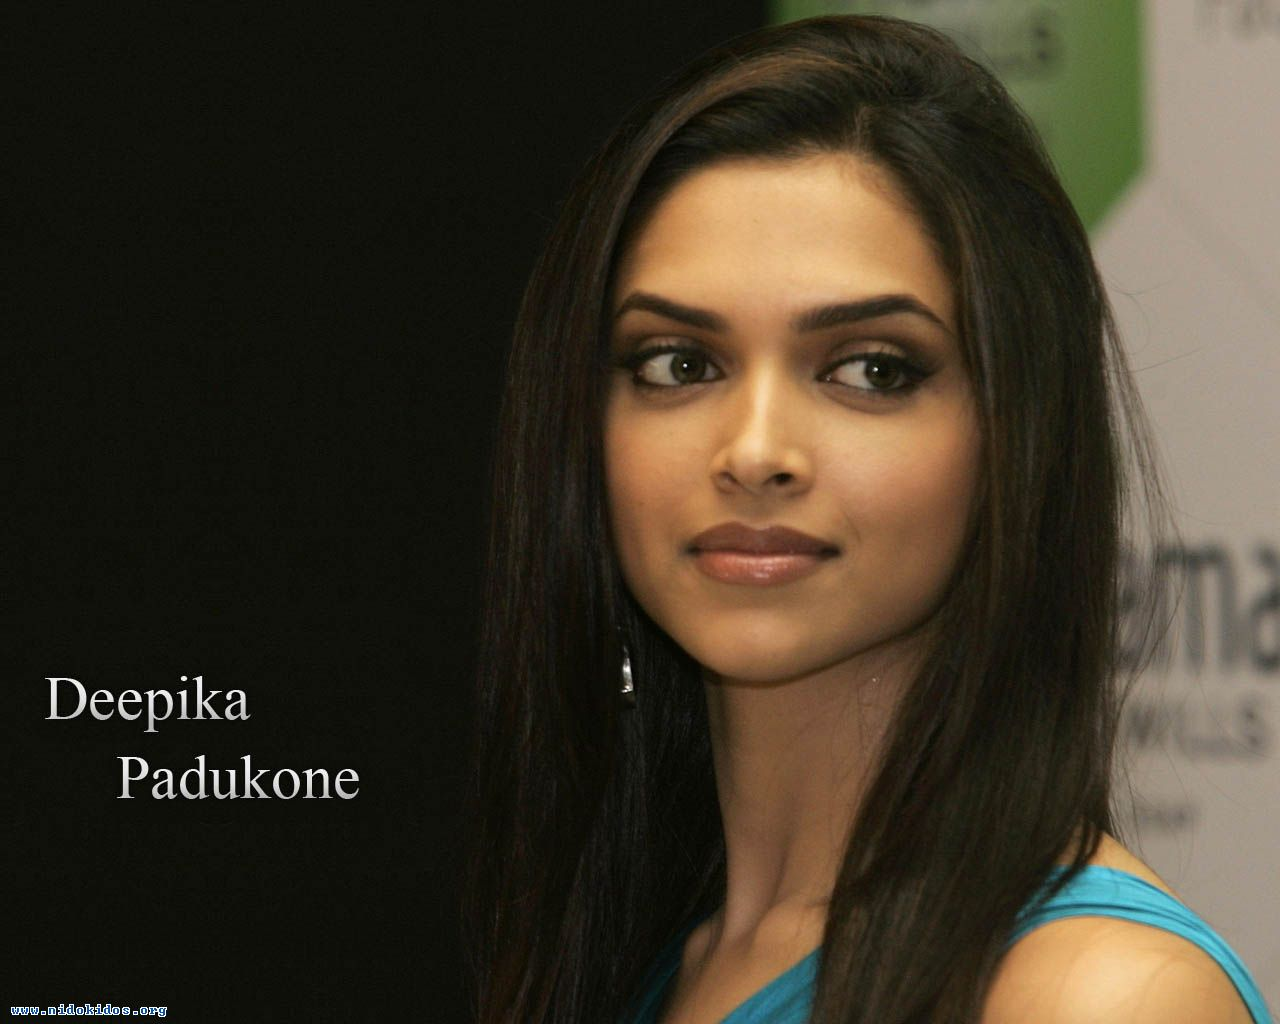 Deepika Padukone - Photo Colection